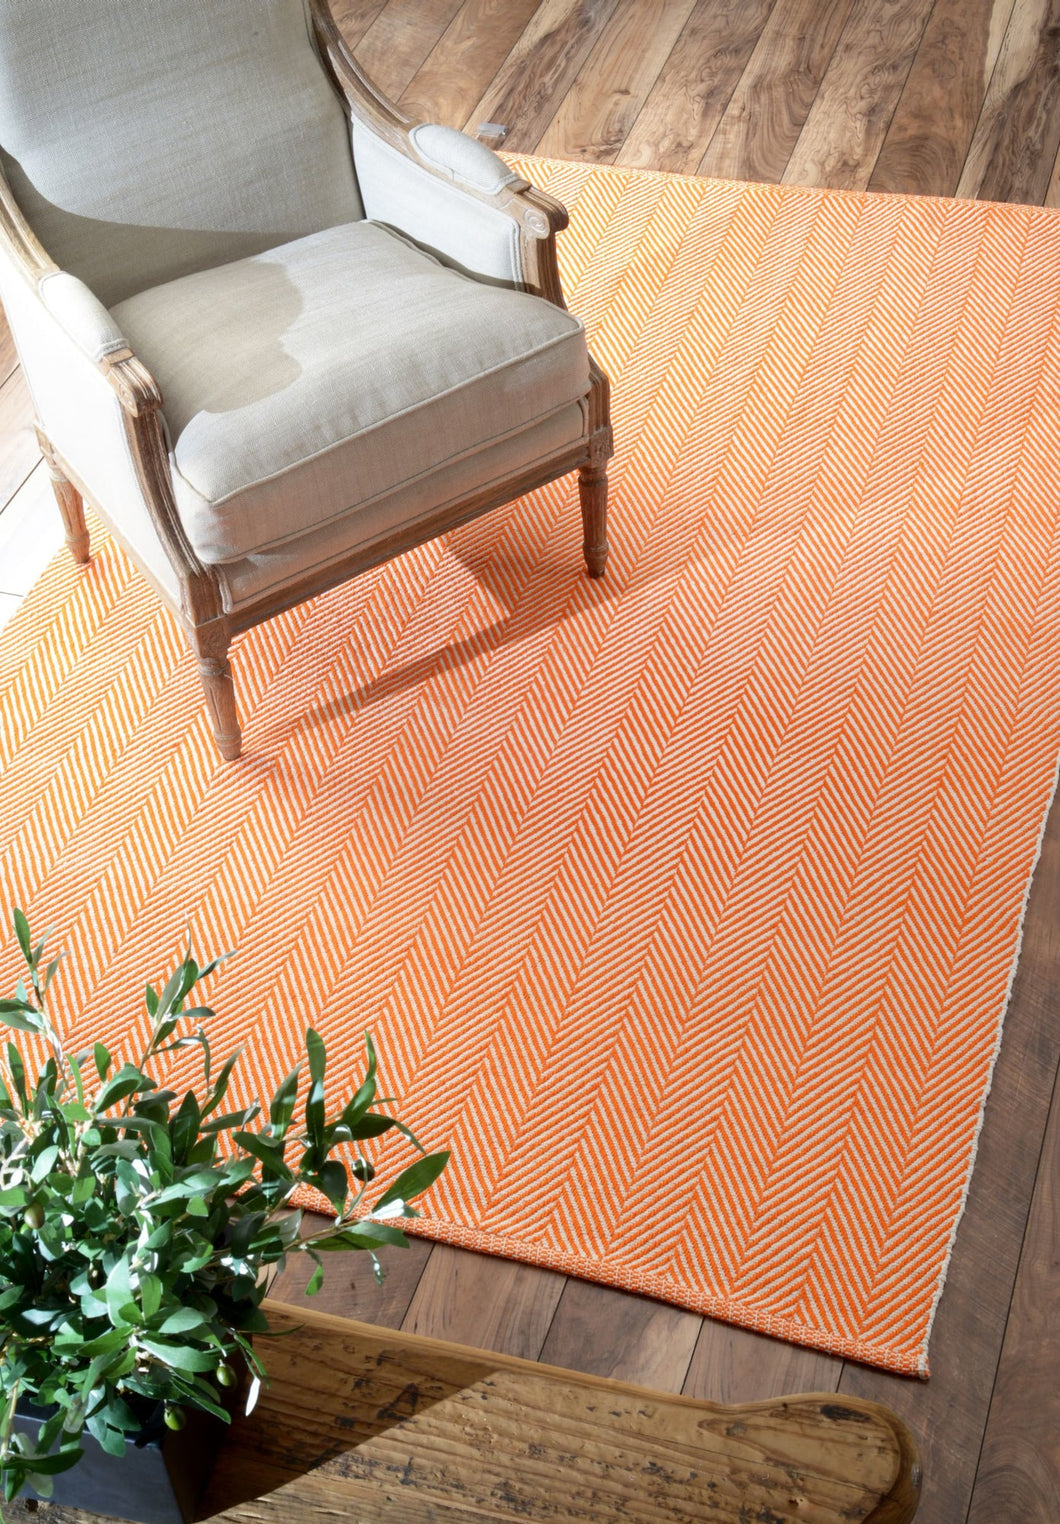 Classic Orange Office Floor Rug w/ Soft Textured Pattern (Multiple Sizes)